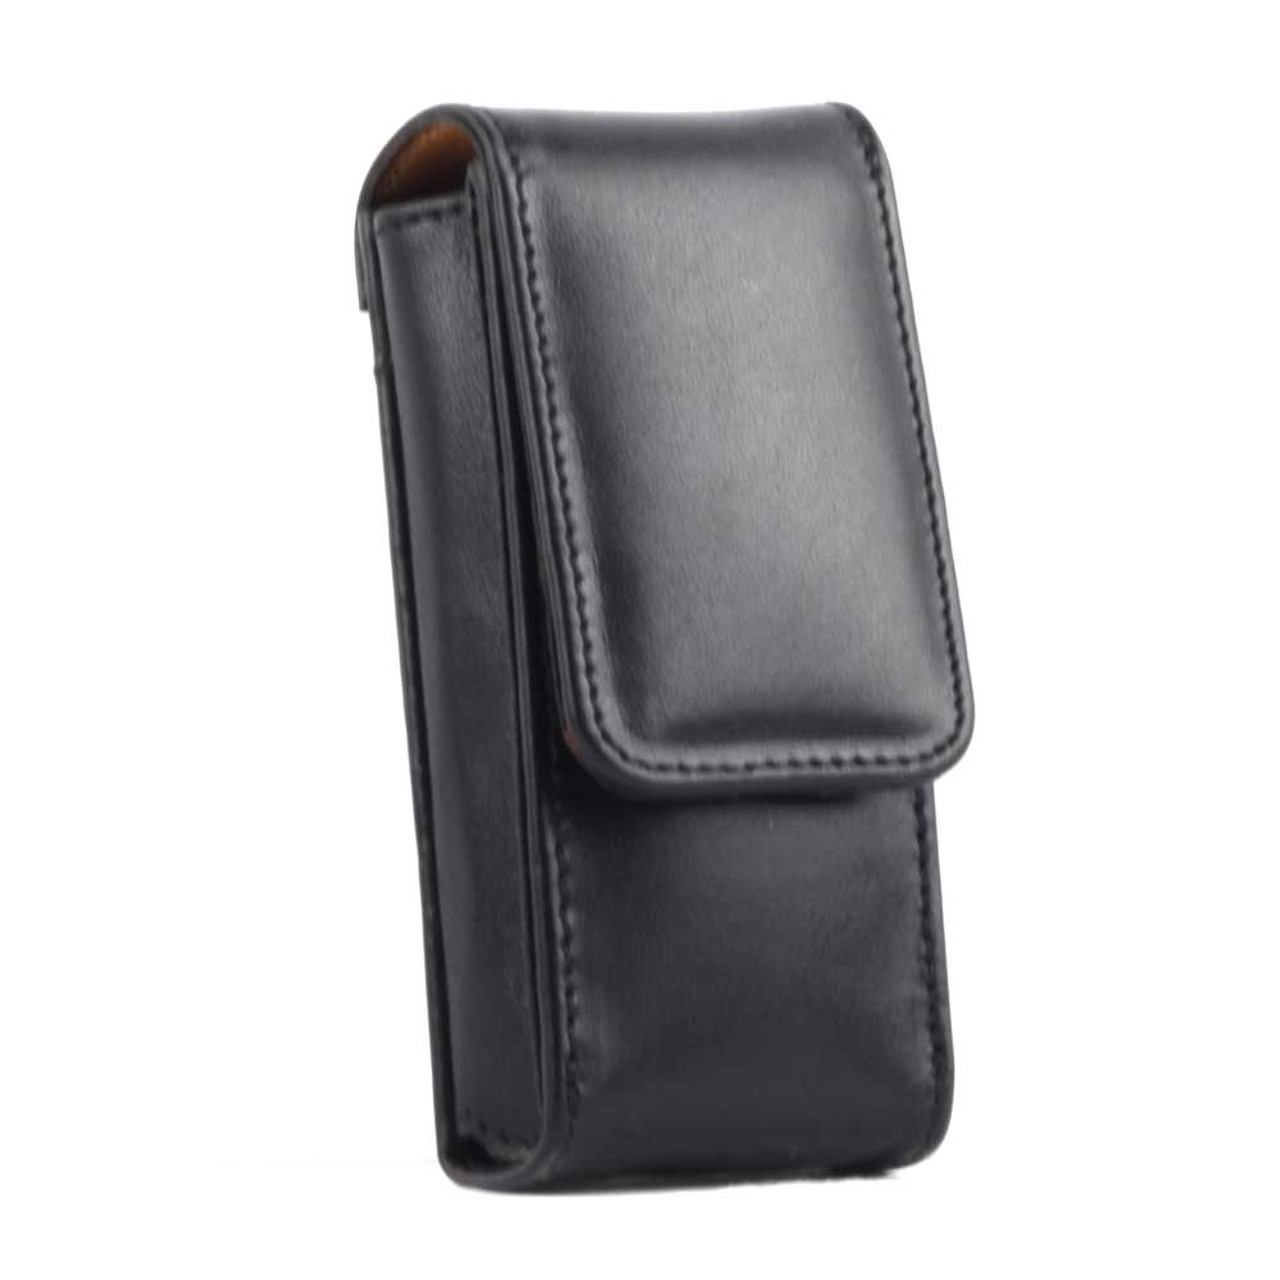 Kahr PM40 Plan B Magazine Holster